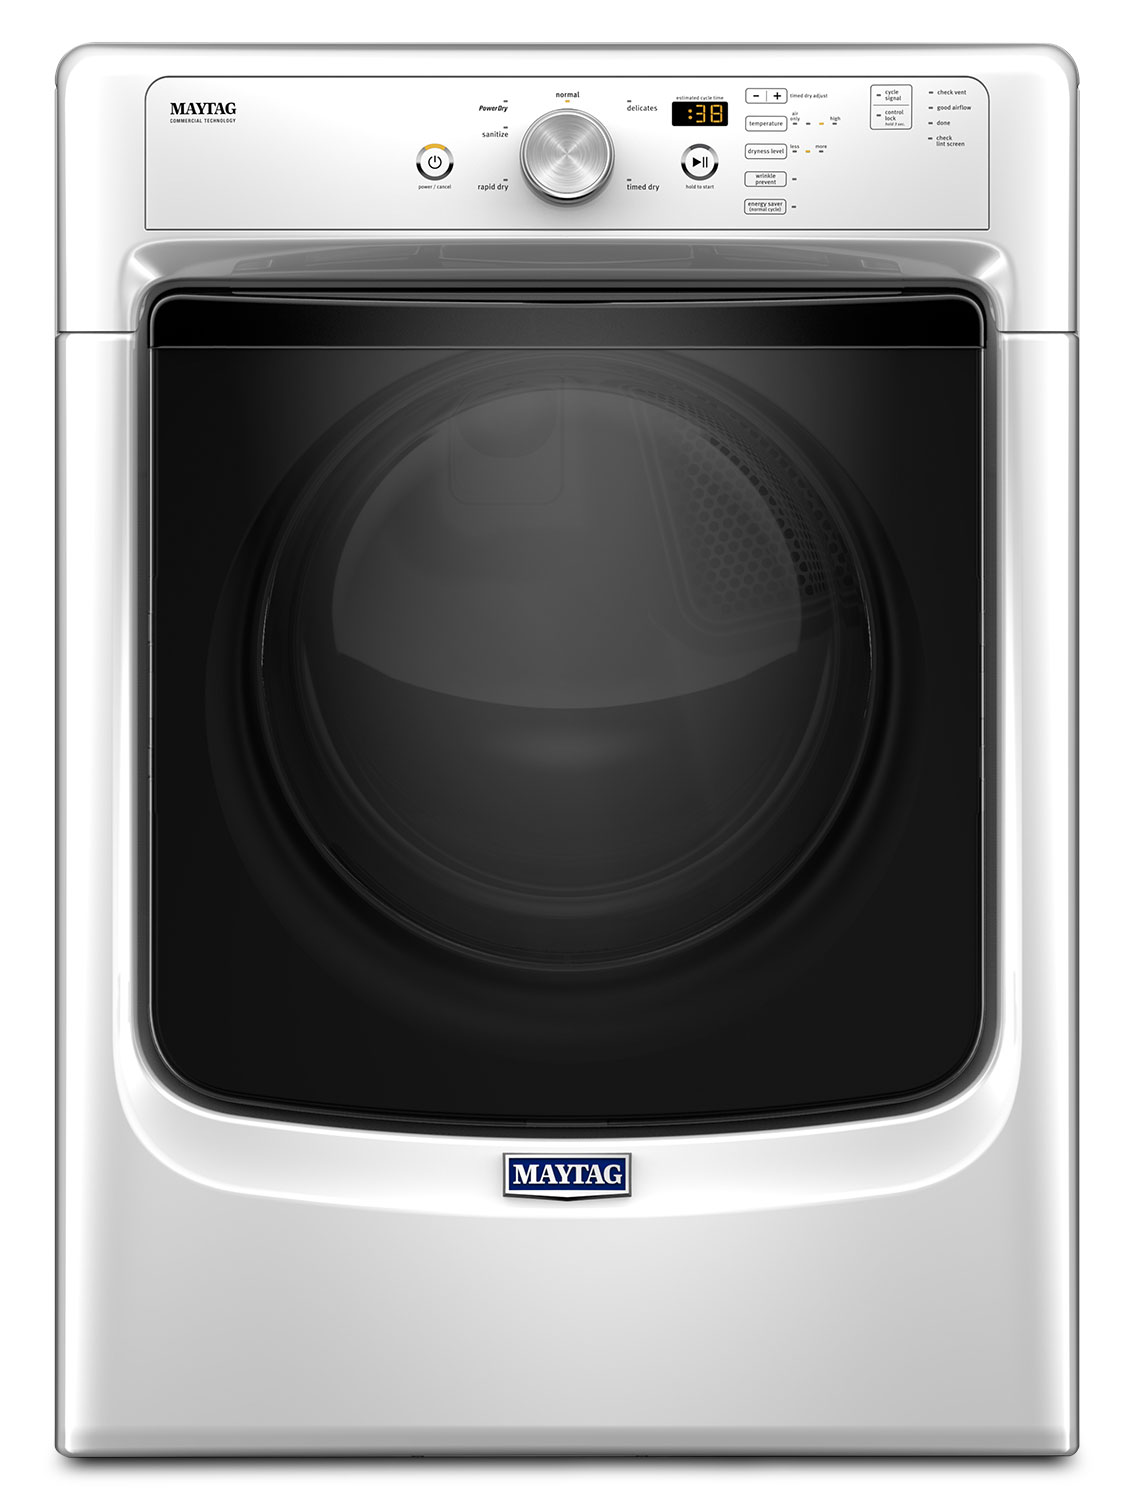 Washers and Dryers - Maytag White Electric Dryer (7.4 Cu. Ft.) - YMED3500FW